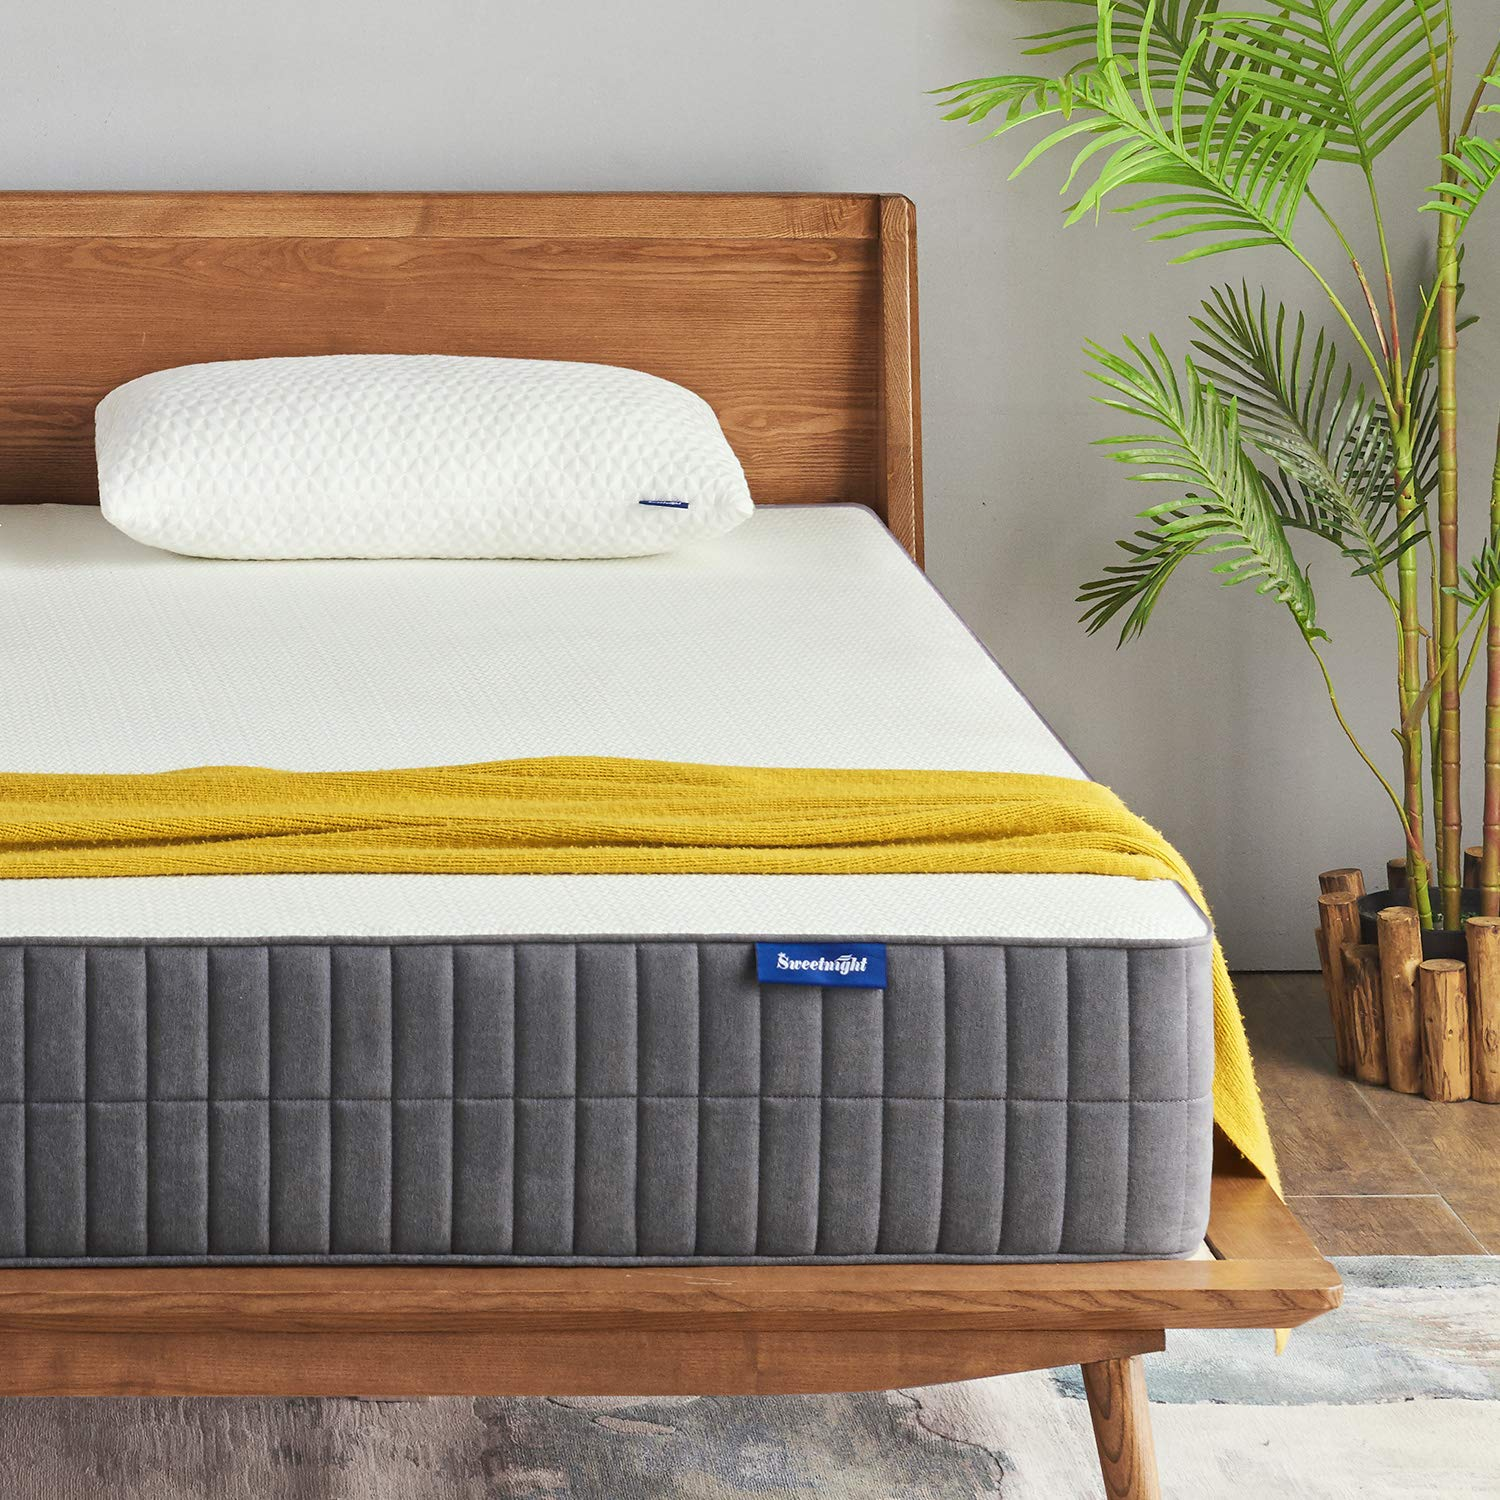 King Mattress, Sweetnight King Size Mattress- 10 Inch Gel Memory Foam Mattresses with CertiPUR-US Certified for Back Pain Relief/Motion Isolation&Cool Sleep, Flippable Comfort from Soft to Medium Firm